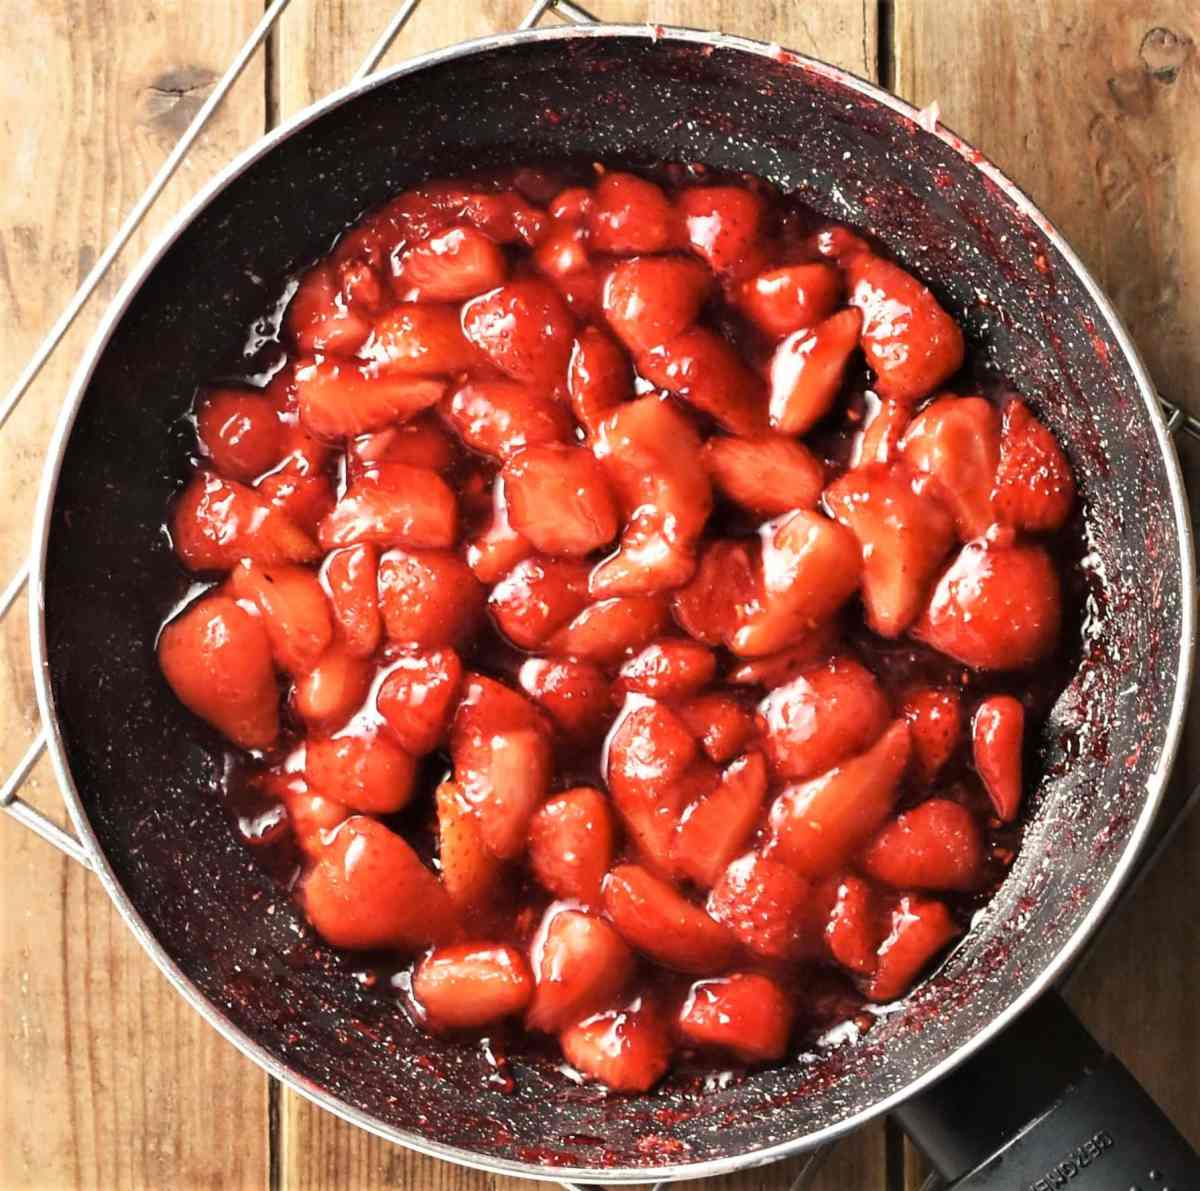 Cooked strawberries in pan.